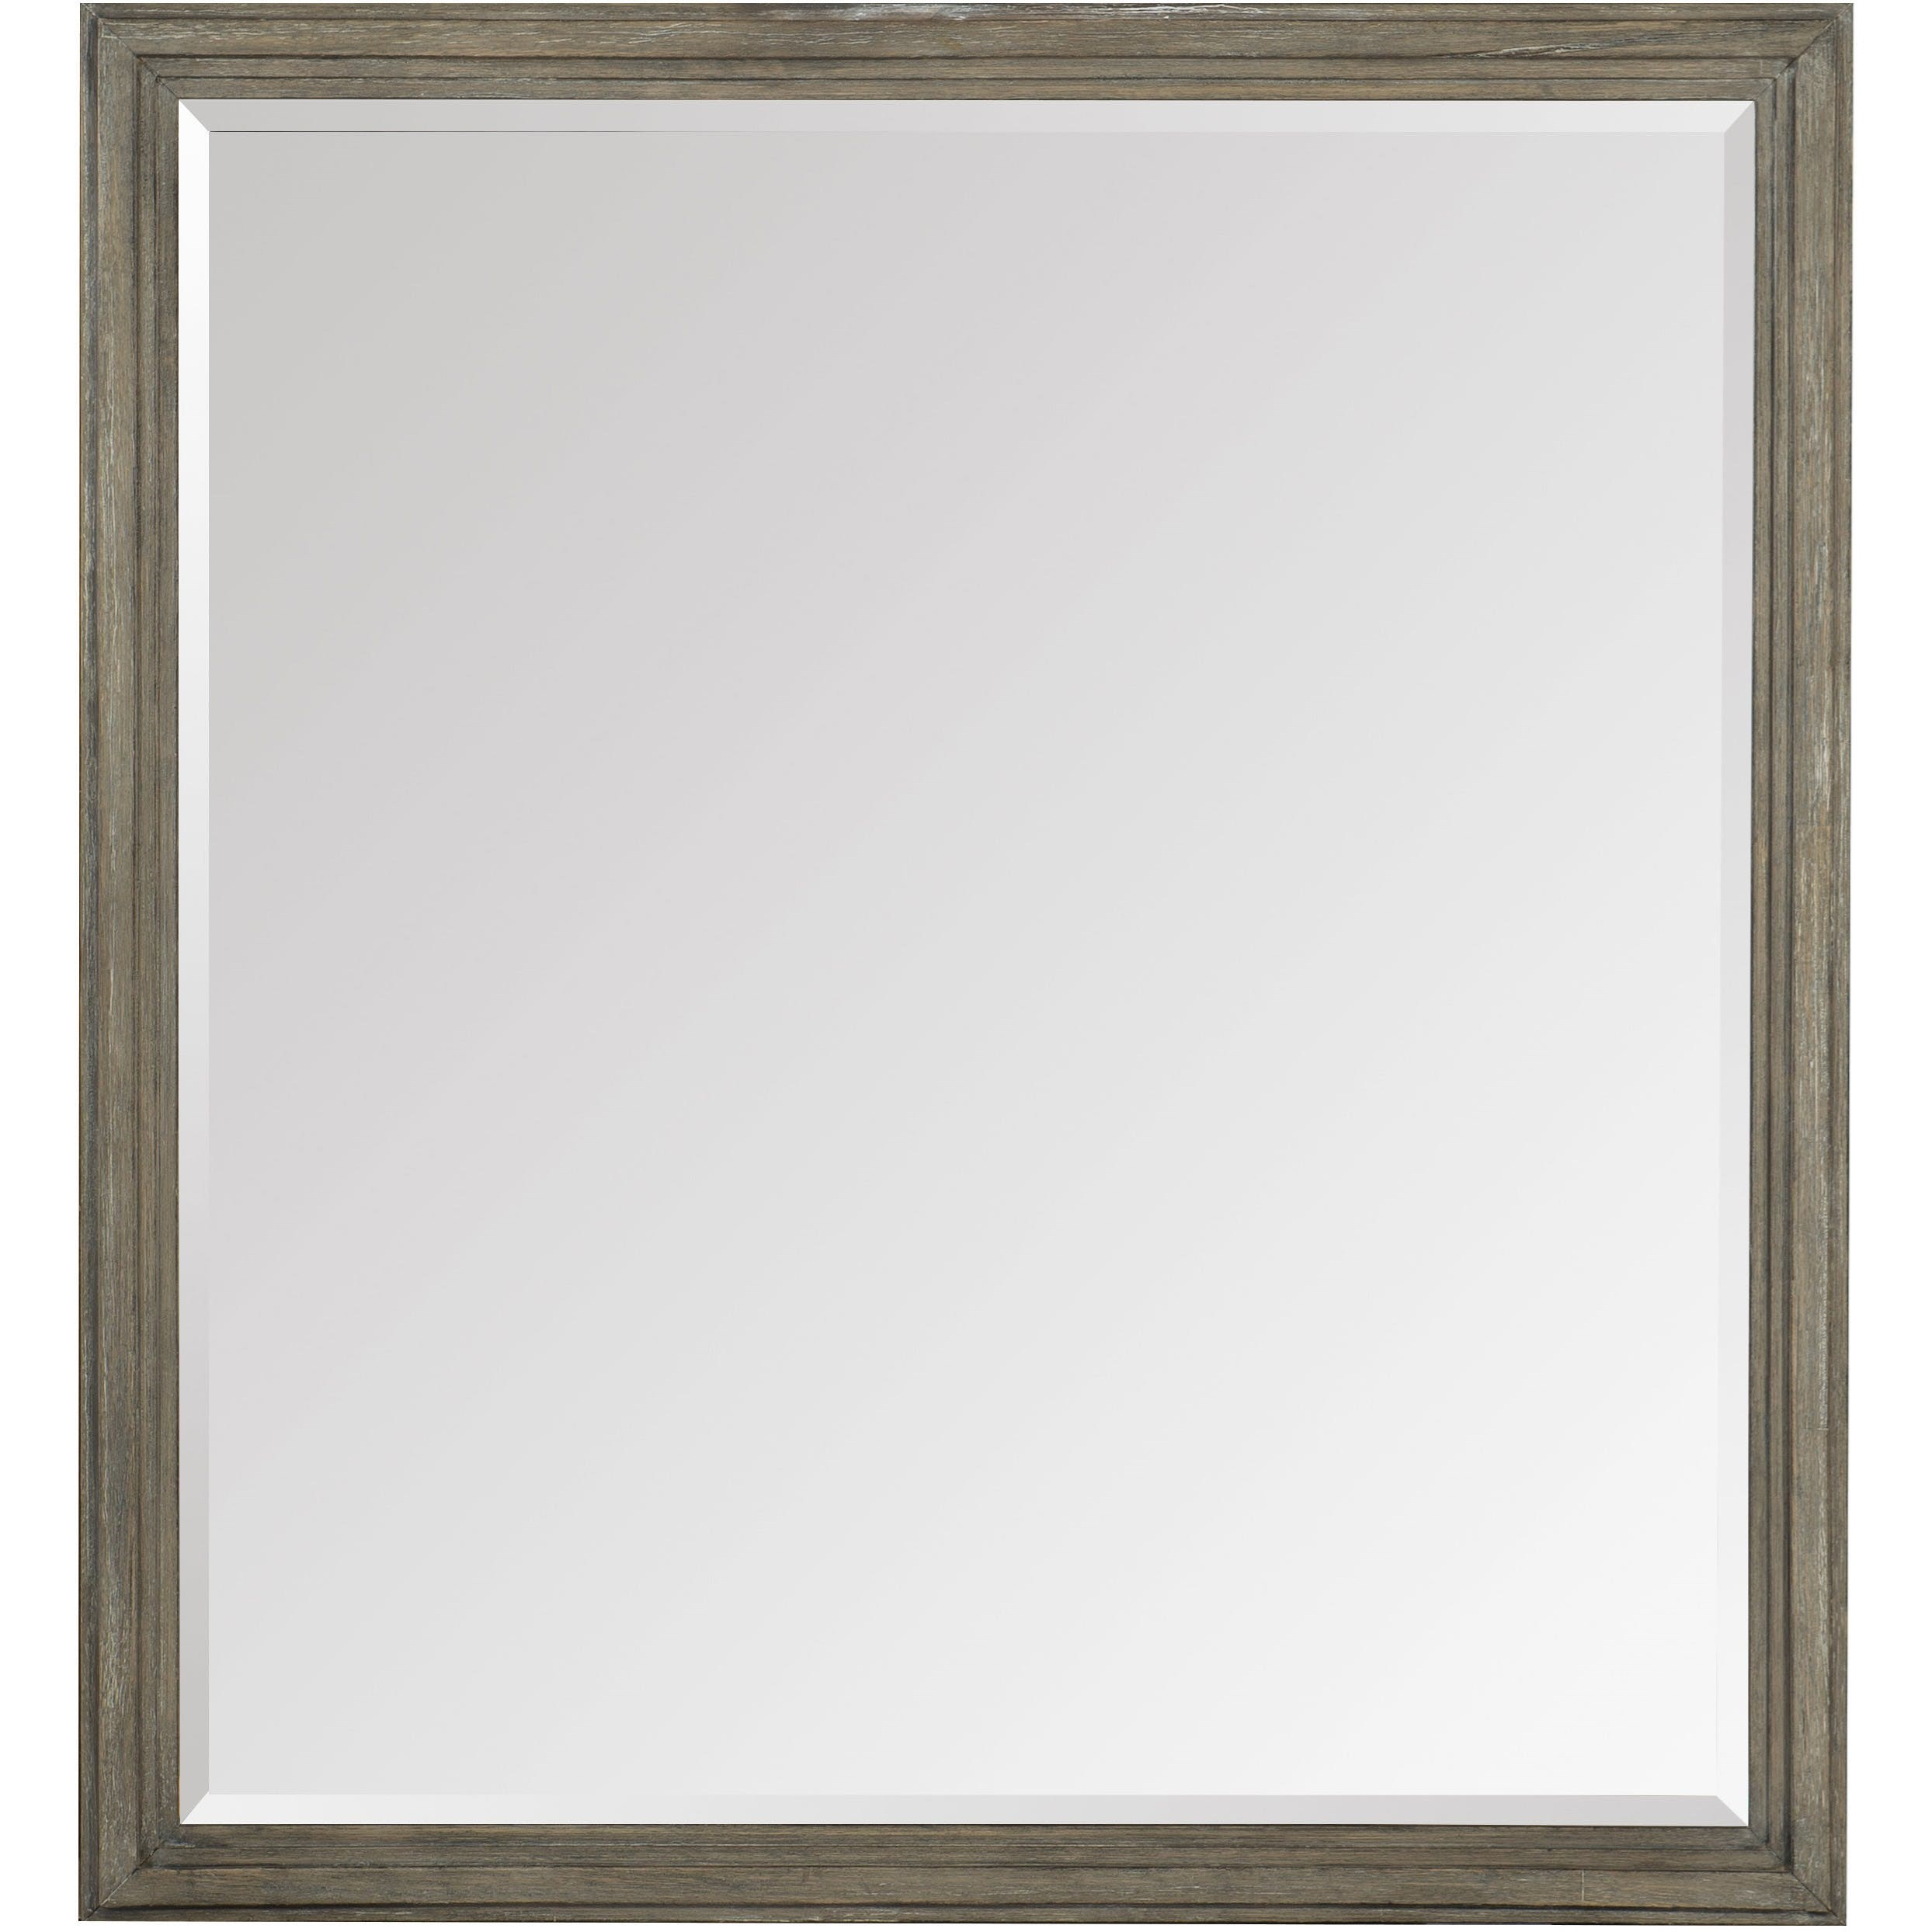 Annex Mirror by Hooker Furniture at Alison Craig Home Furnishings